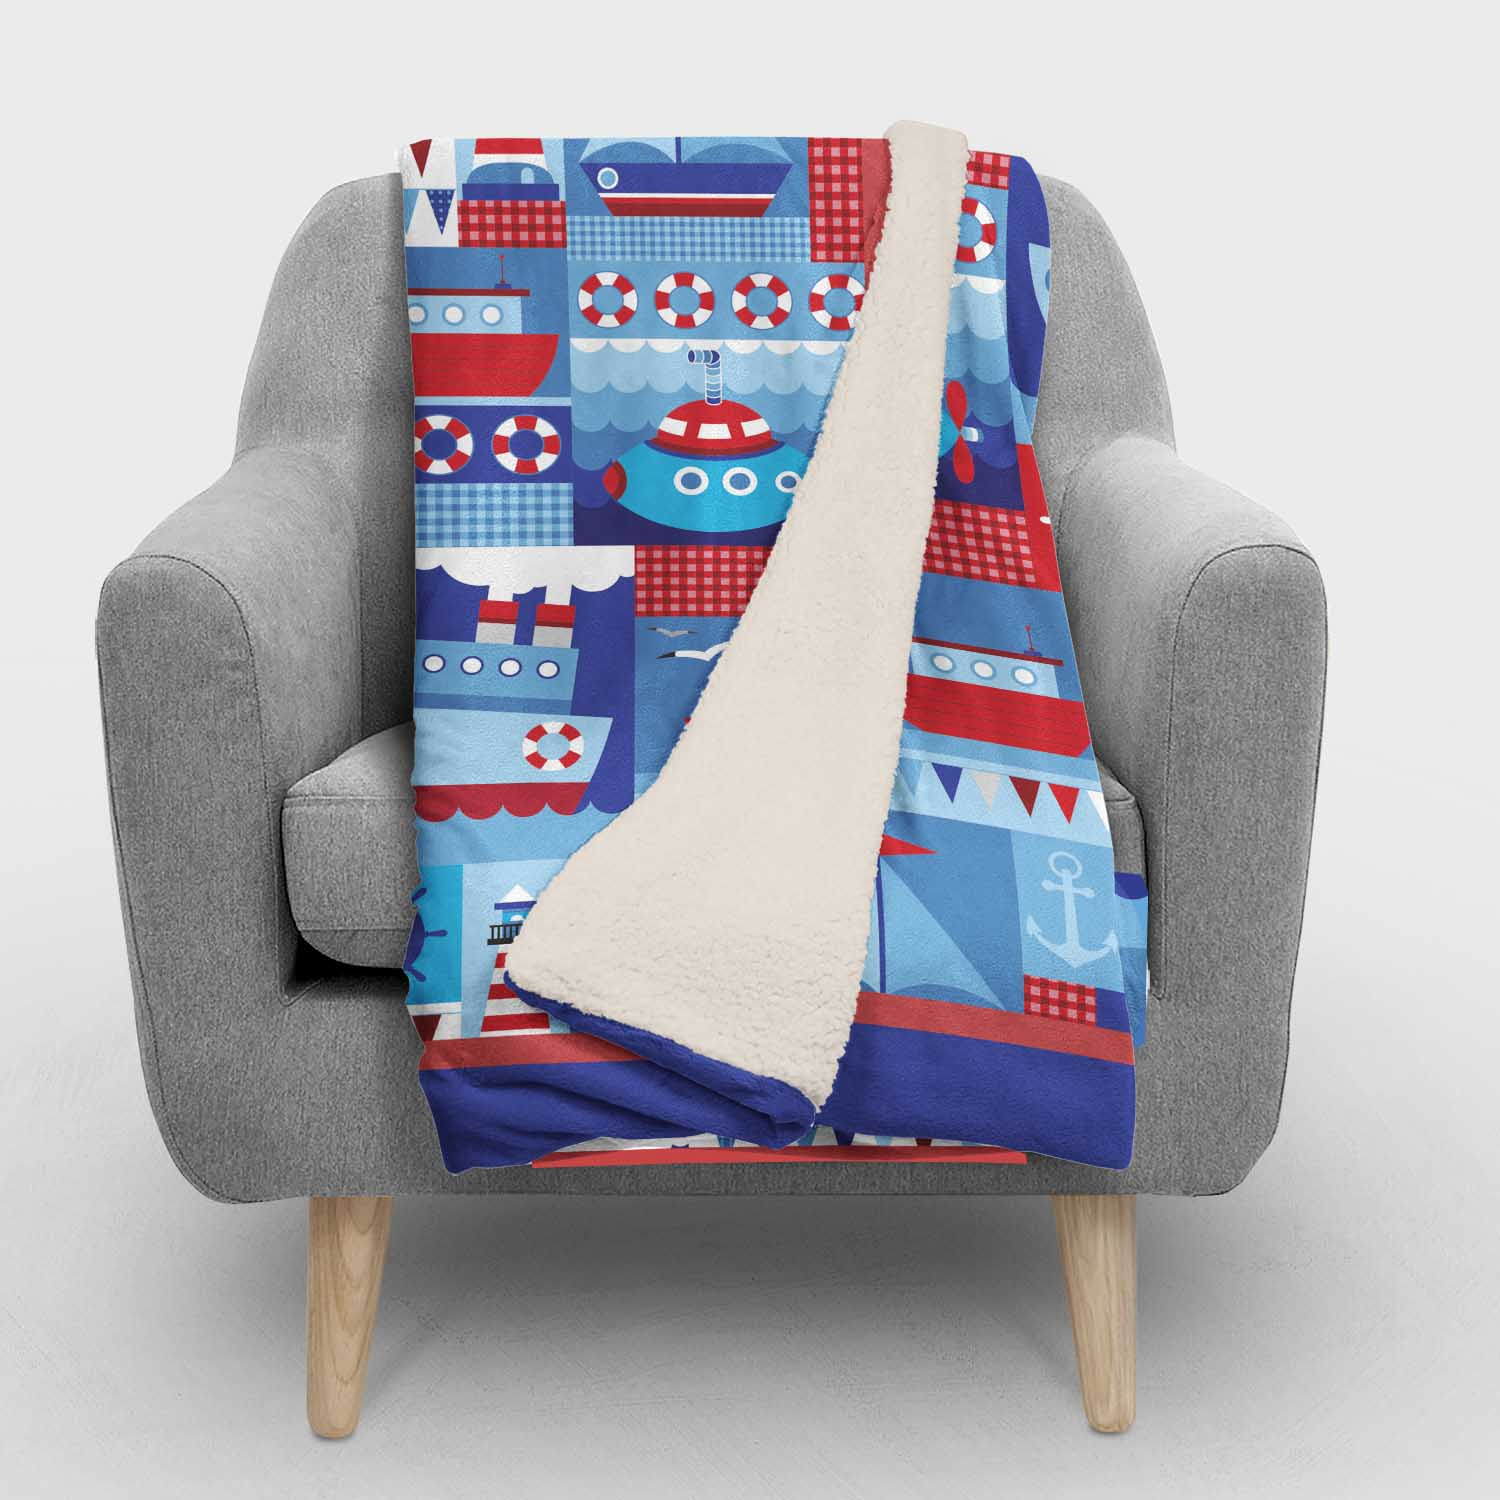 PKSHER00008-OceanAdventuresNautical-SHERPABLANKET50x60 Ocean Adventures Nautical Boats Theme Boys Kids Minky Fleece Sherpa Backed Throw Blanket Room Decor Accessories by Pickleberry Kids